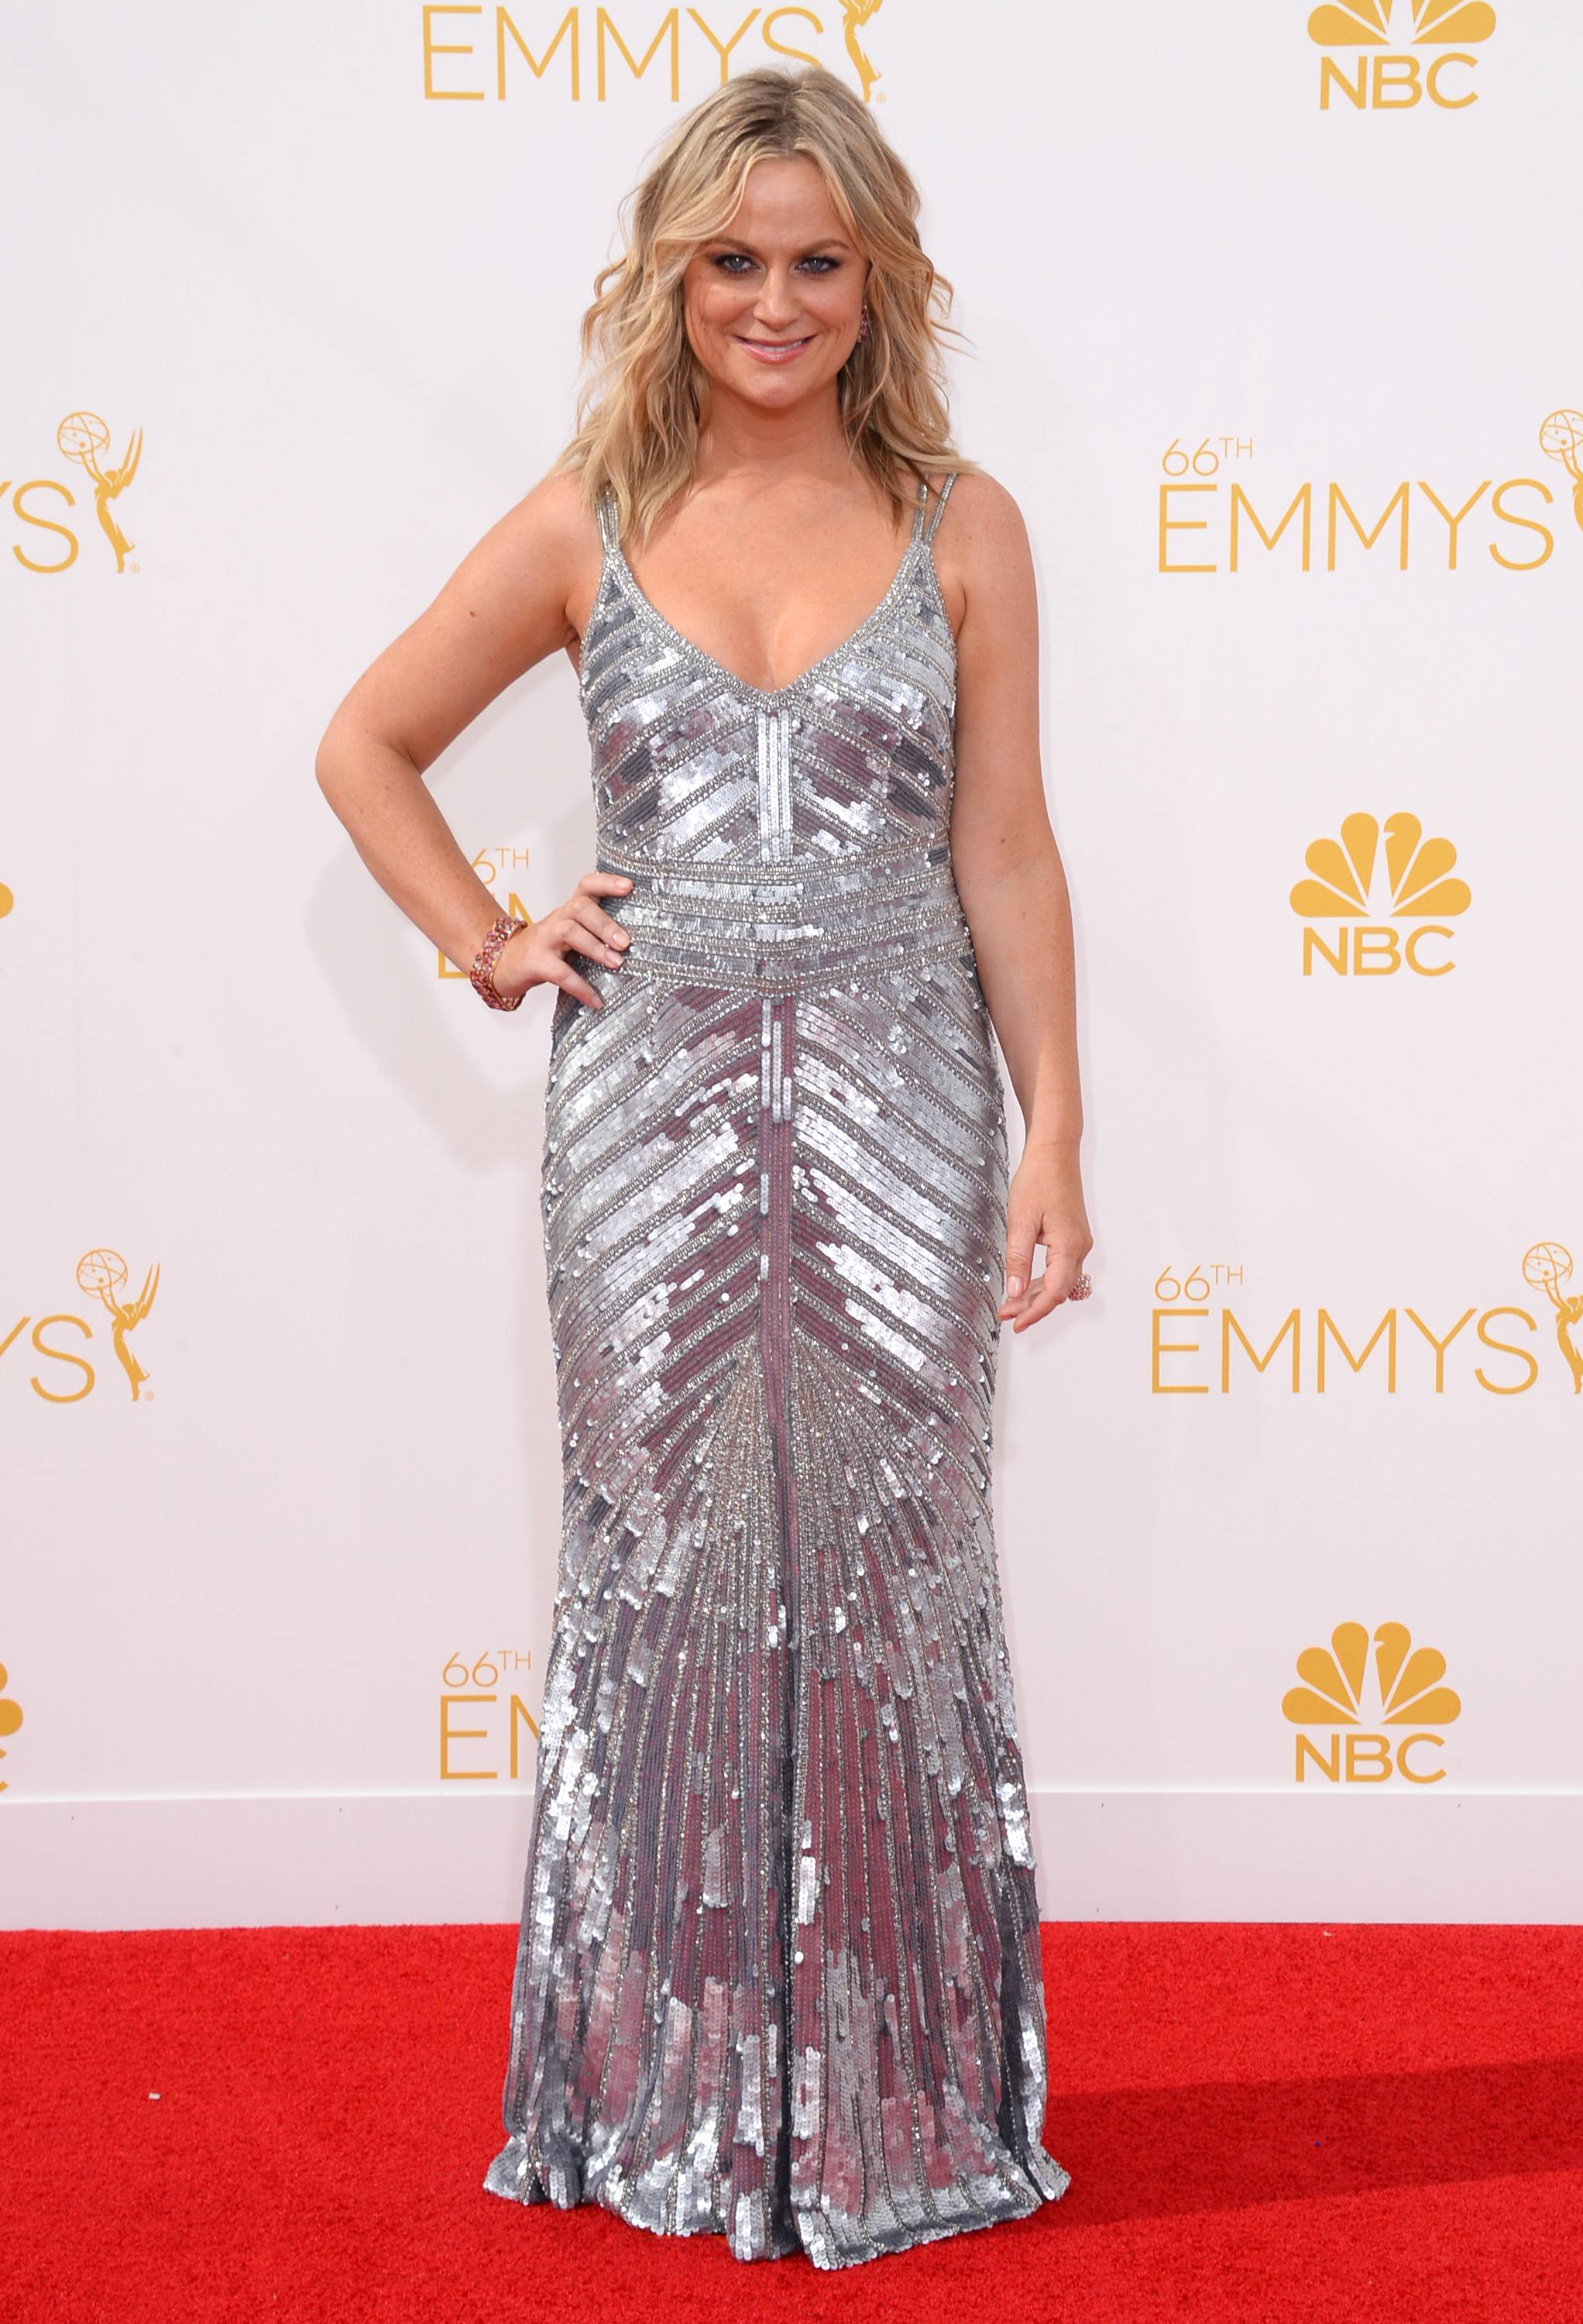 Daytime Emmy Awards 2018 Red Carpet Fashion: See All the 25